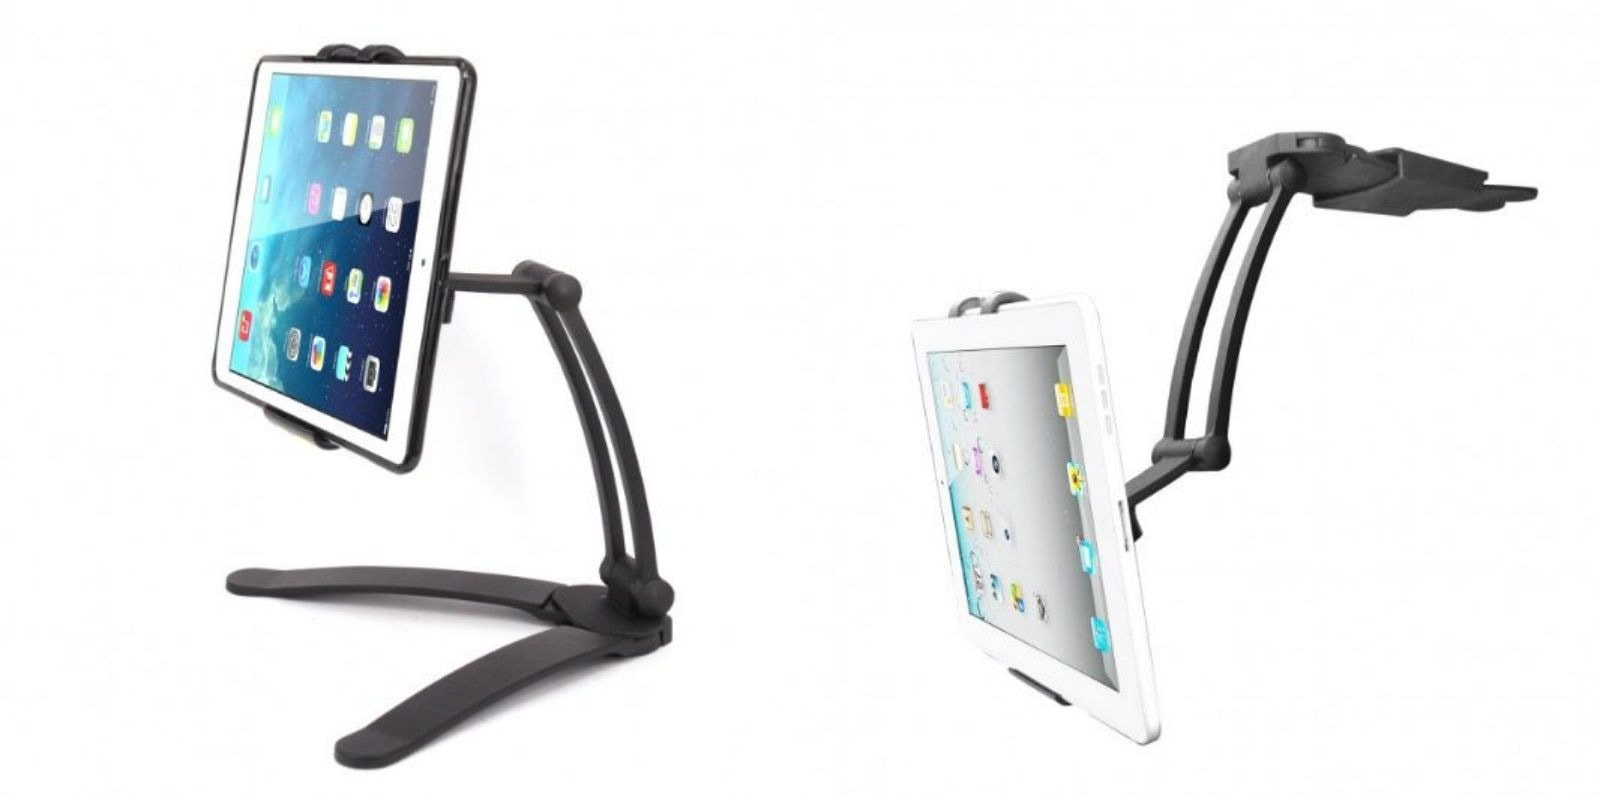 This tough, multipurpose tablet stand goes anywhere for pretty much any use you can imagine.